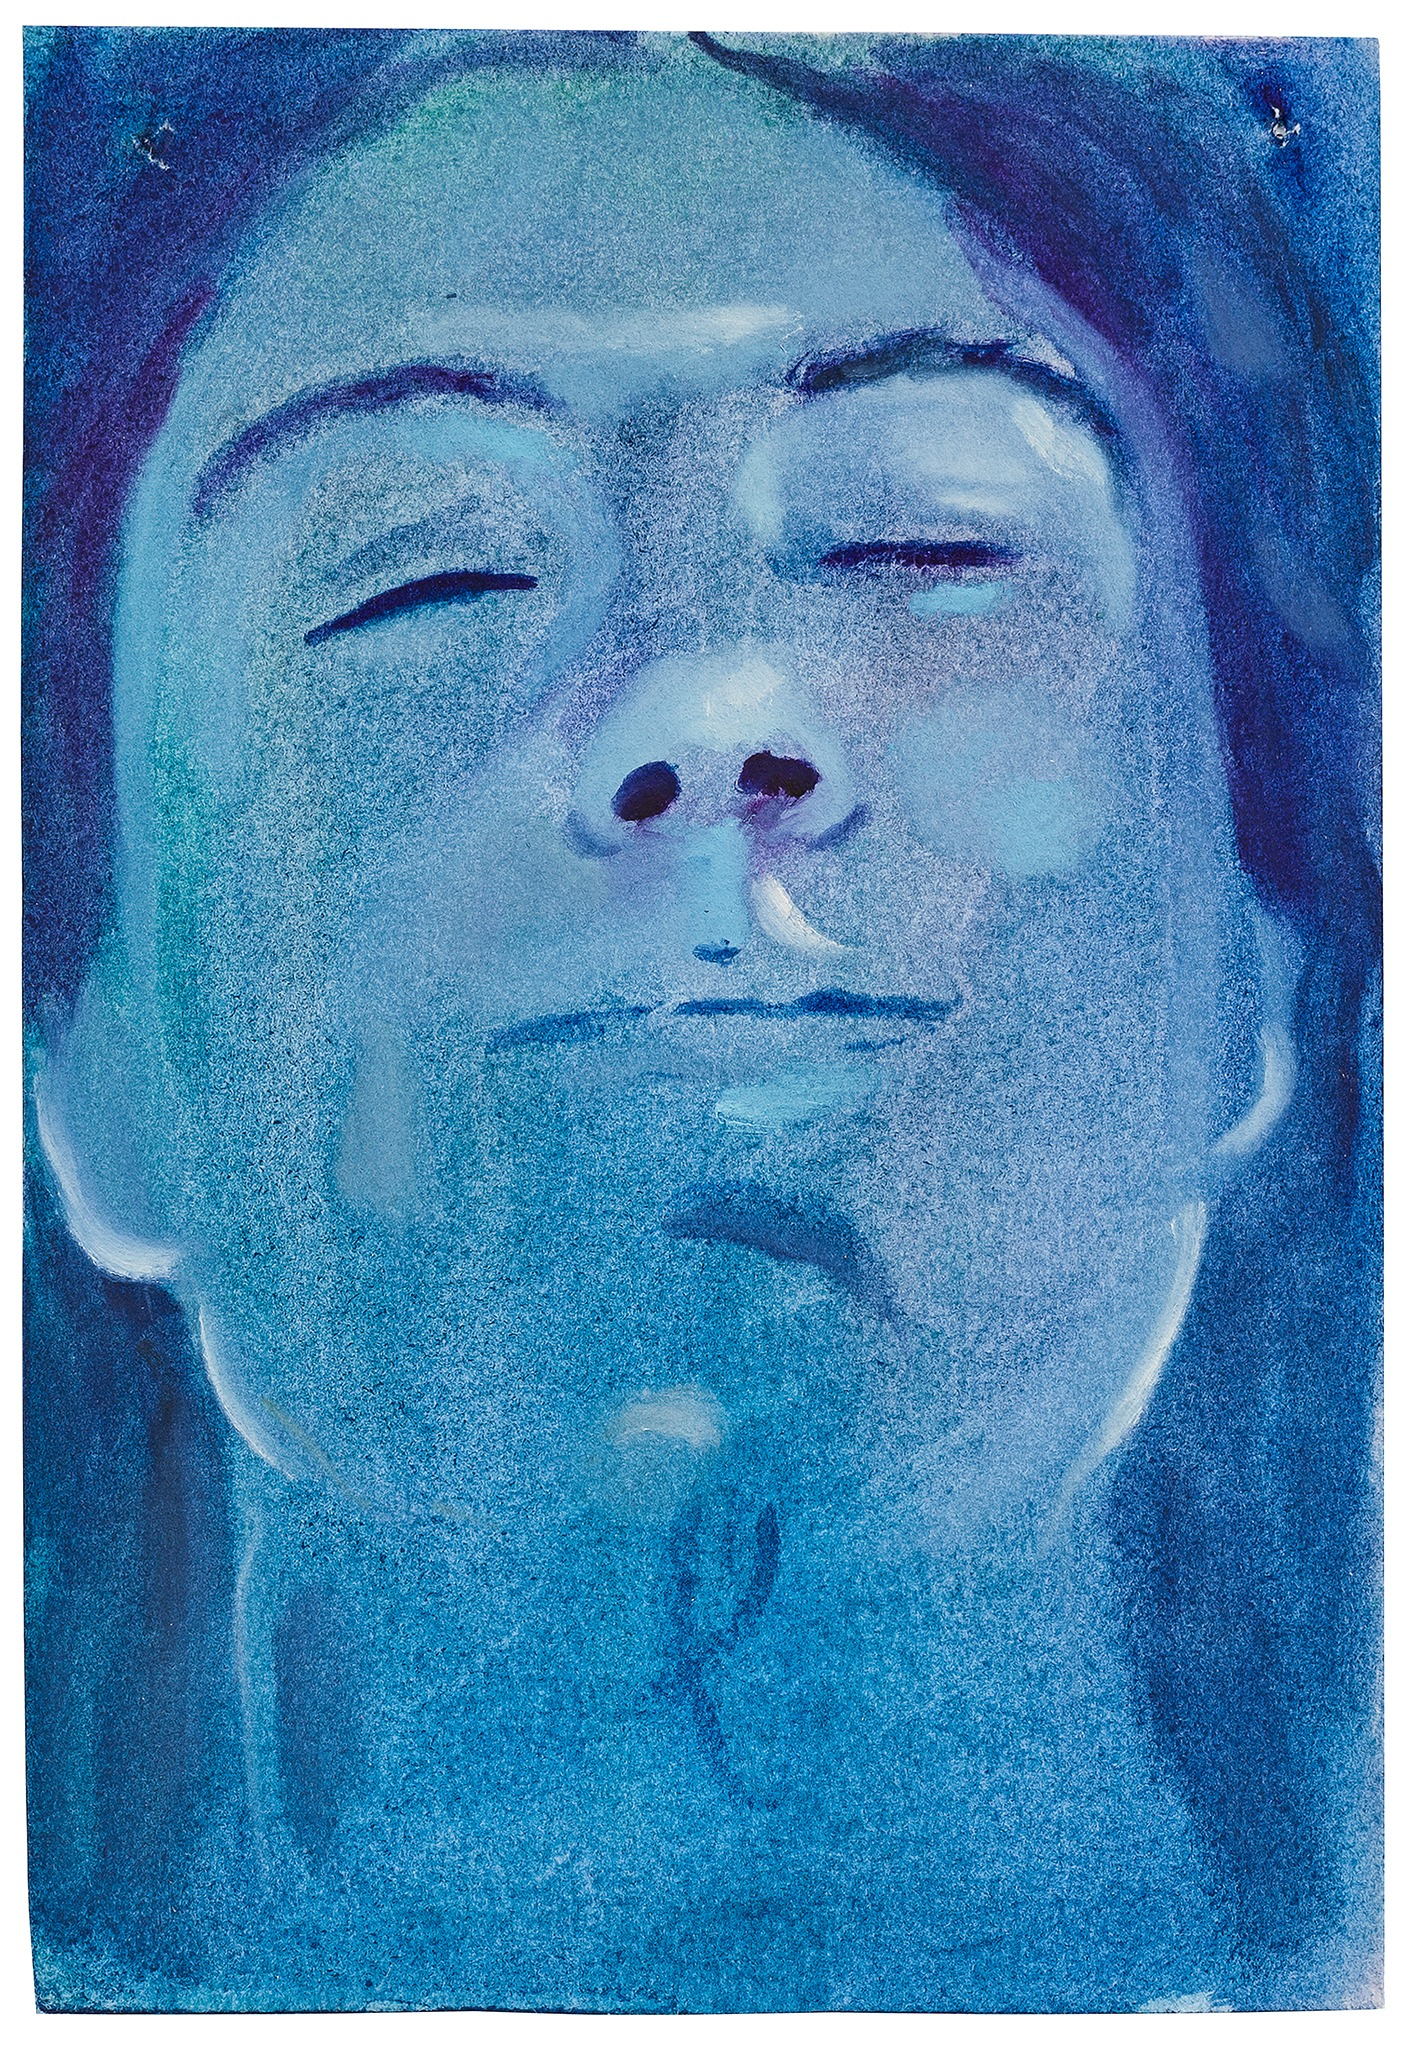 A painting by Aaron Michael Skolnick titled Blue, dated 2020.